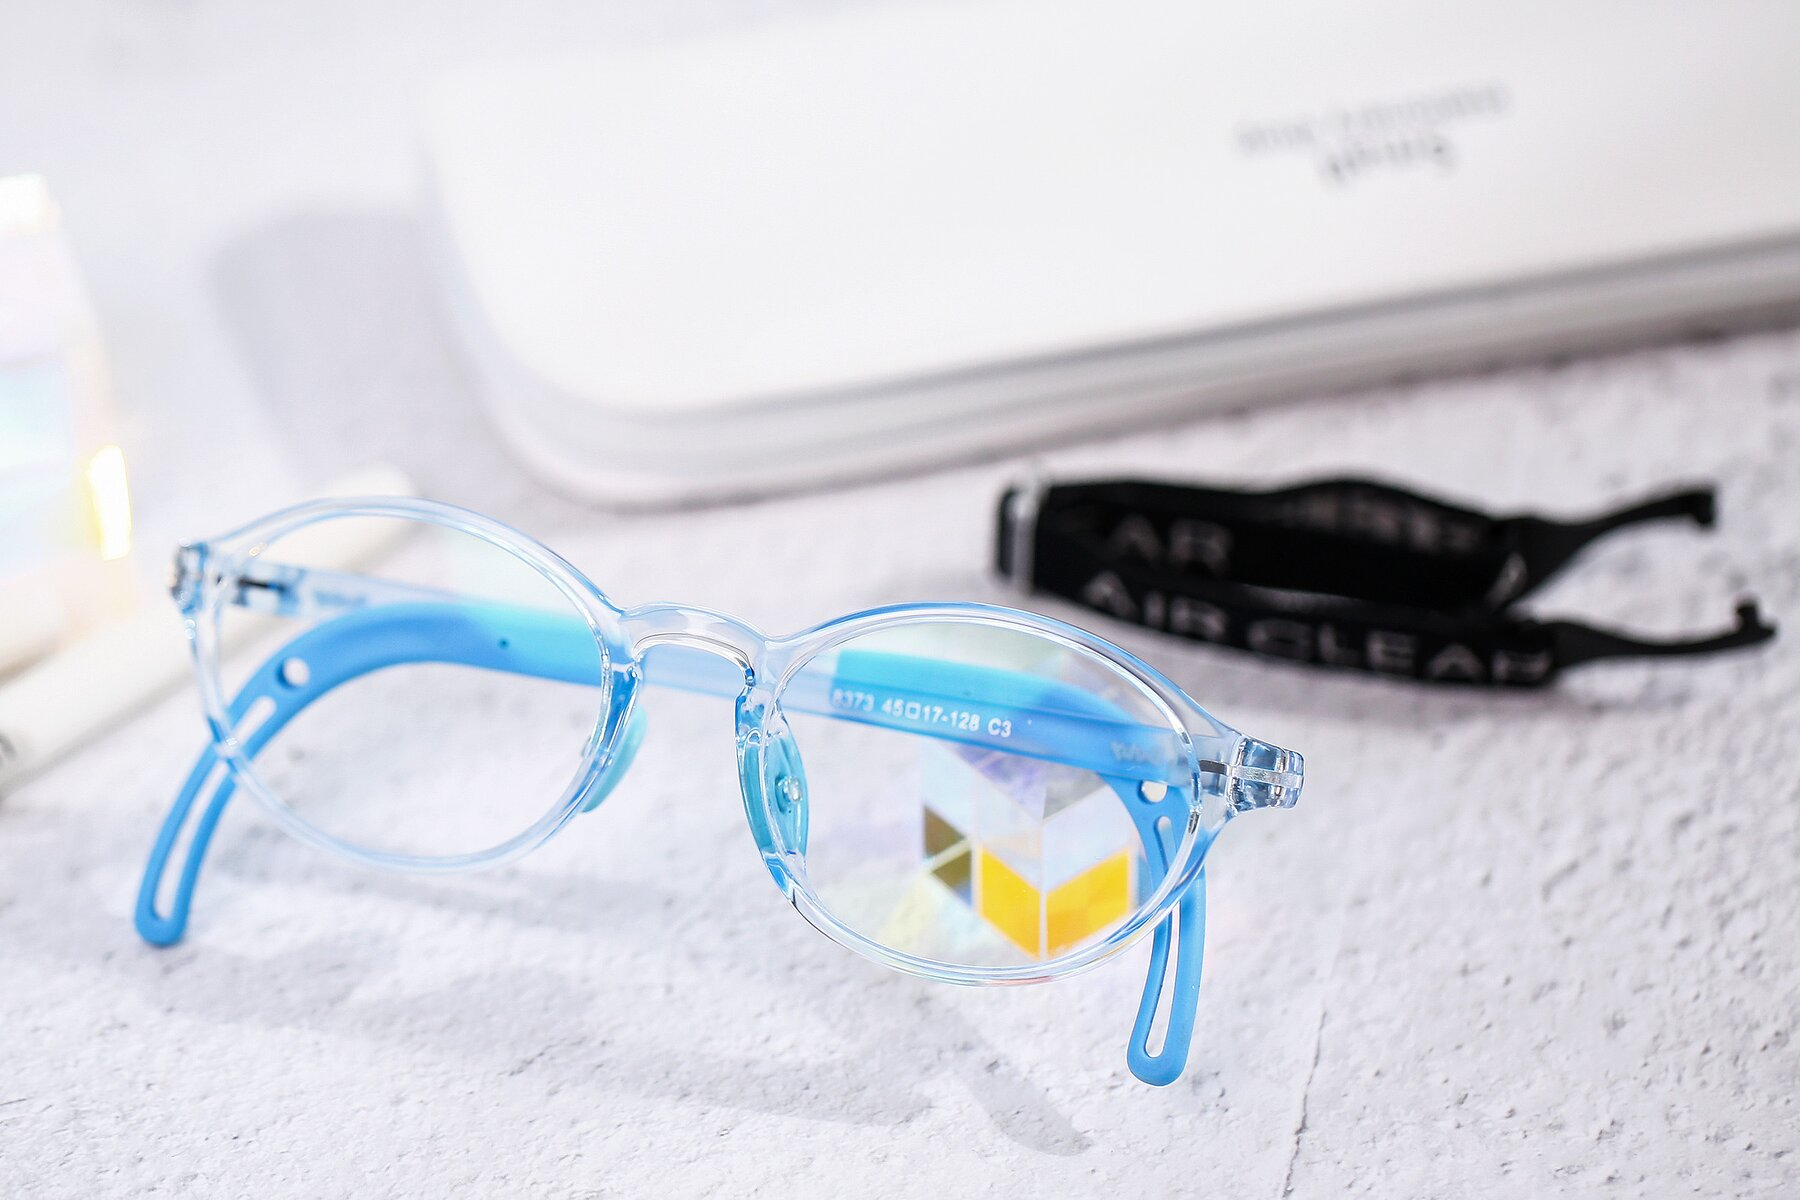 Lifestyle photography #1 of 8373 in Tranparent Blue with Clear Eyeglass Lenses